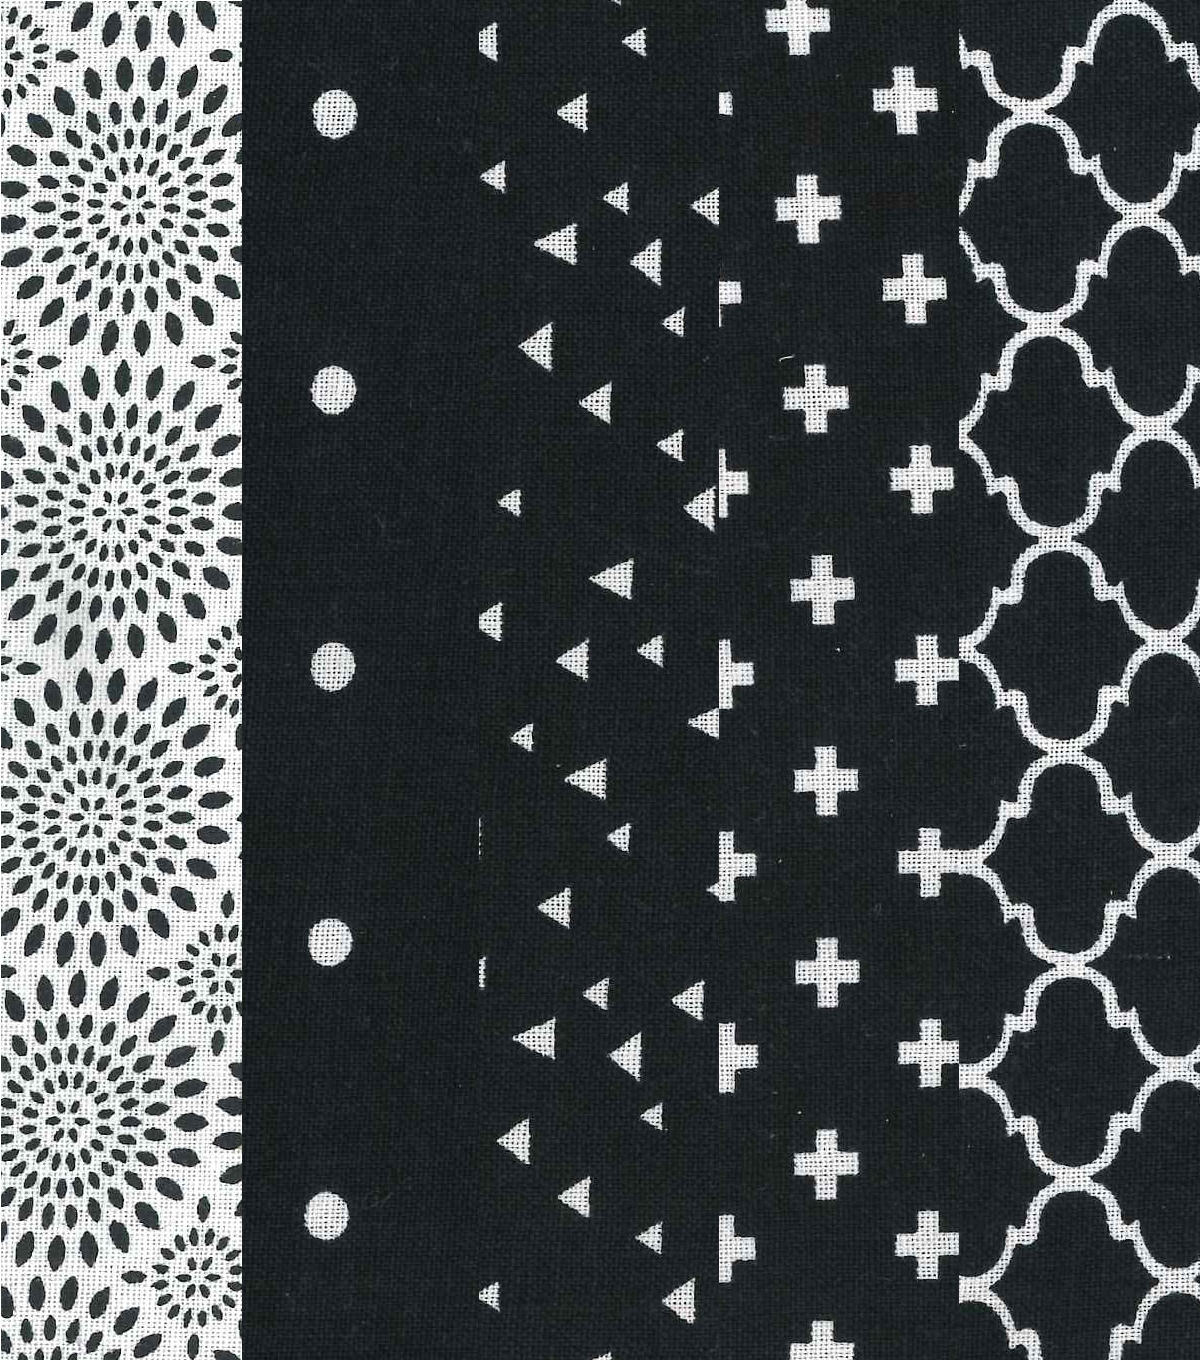 Jelly Roll Cotton Fabric 20 Strips 2.5\u0027\u0027-Assorted Black & White Patterns